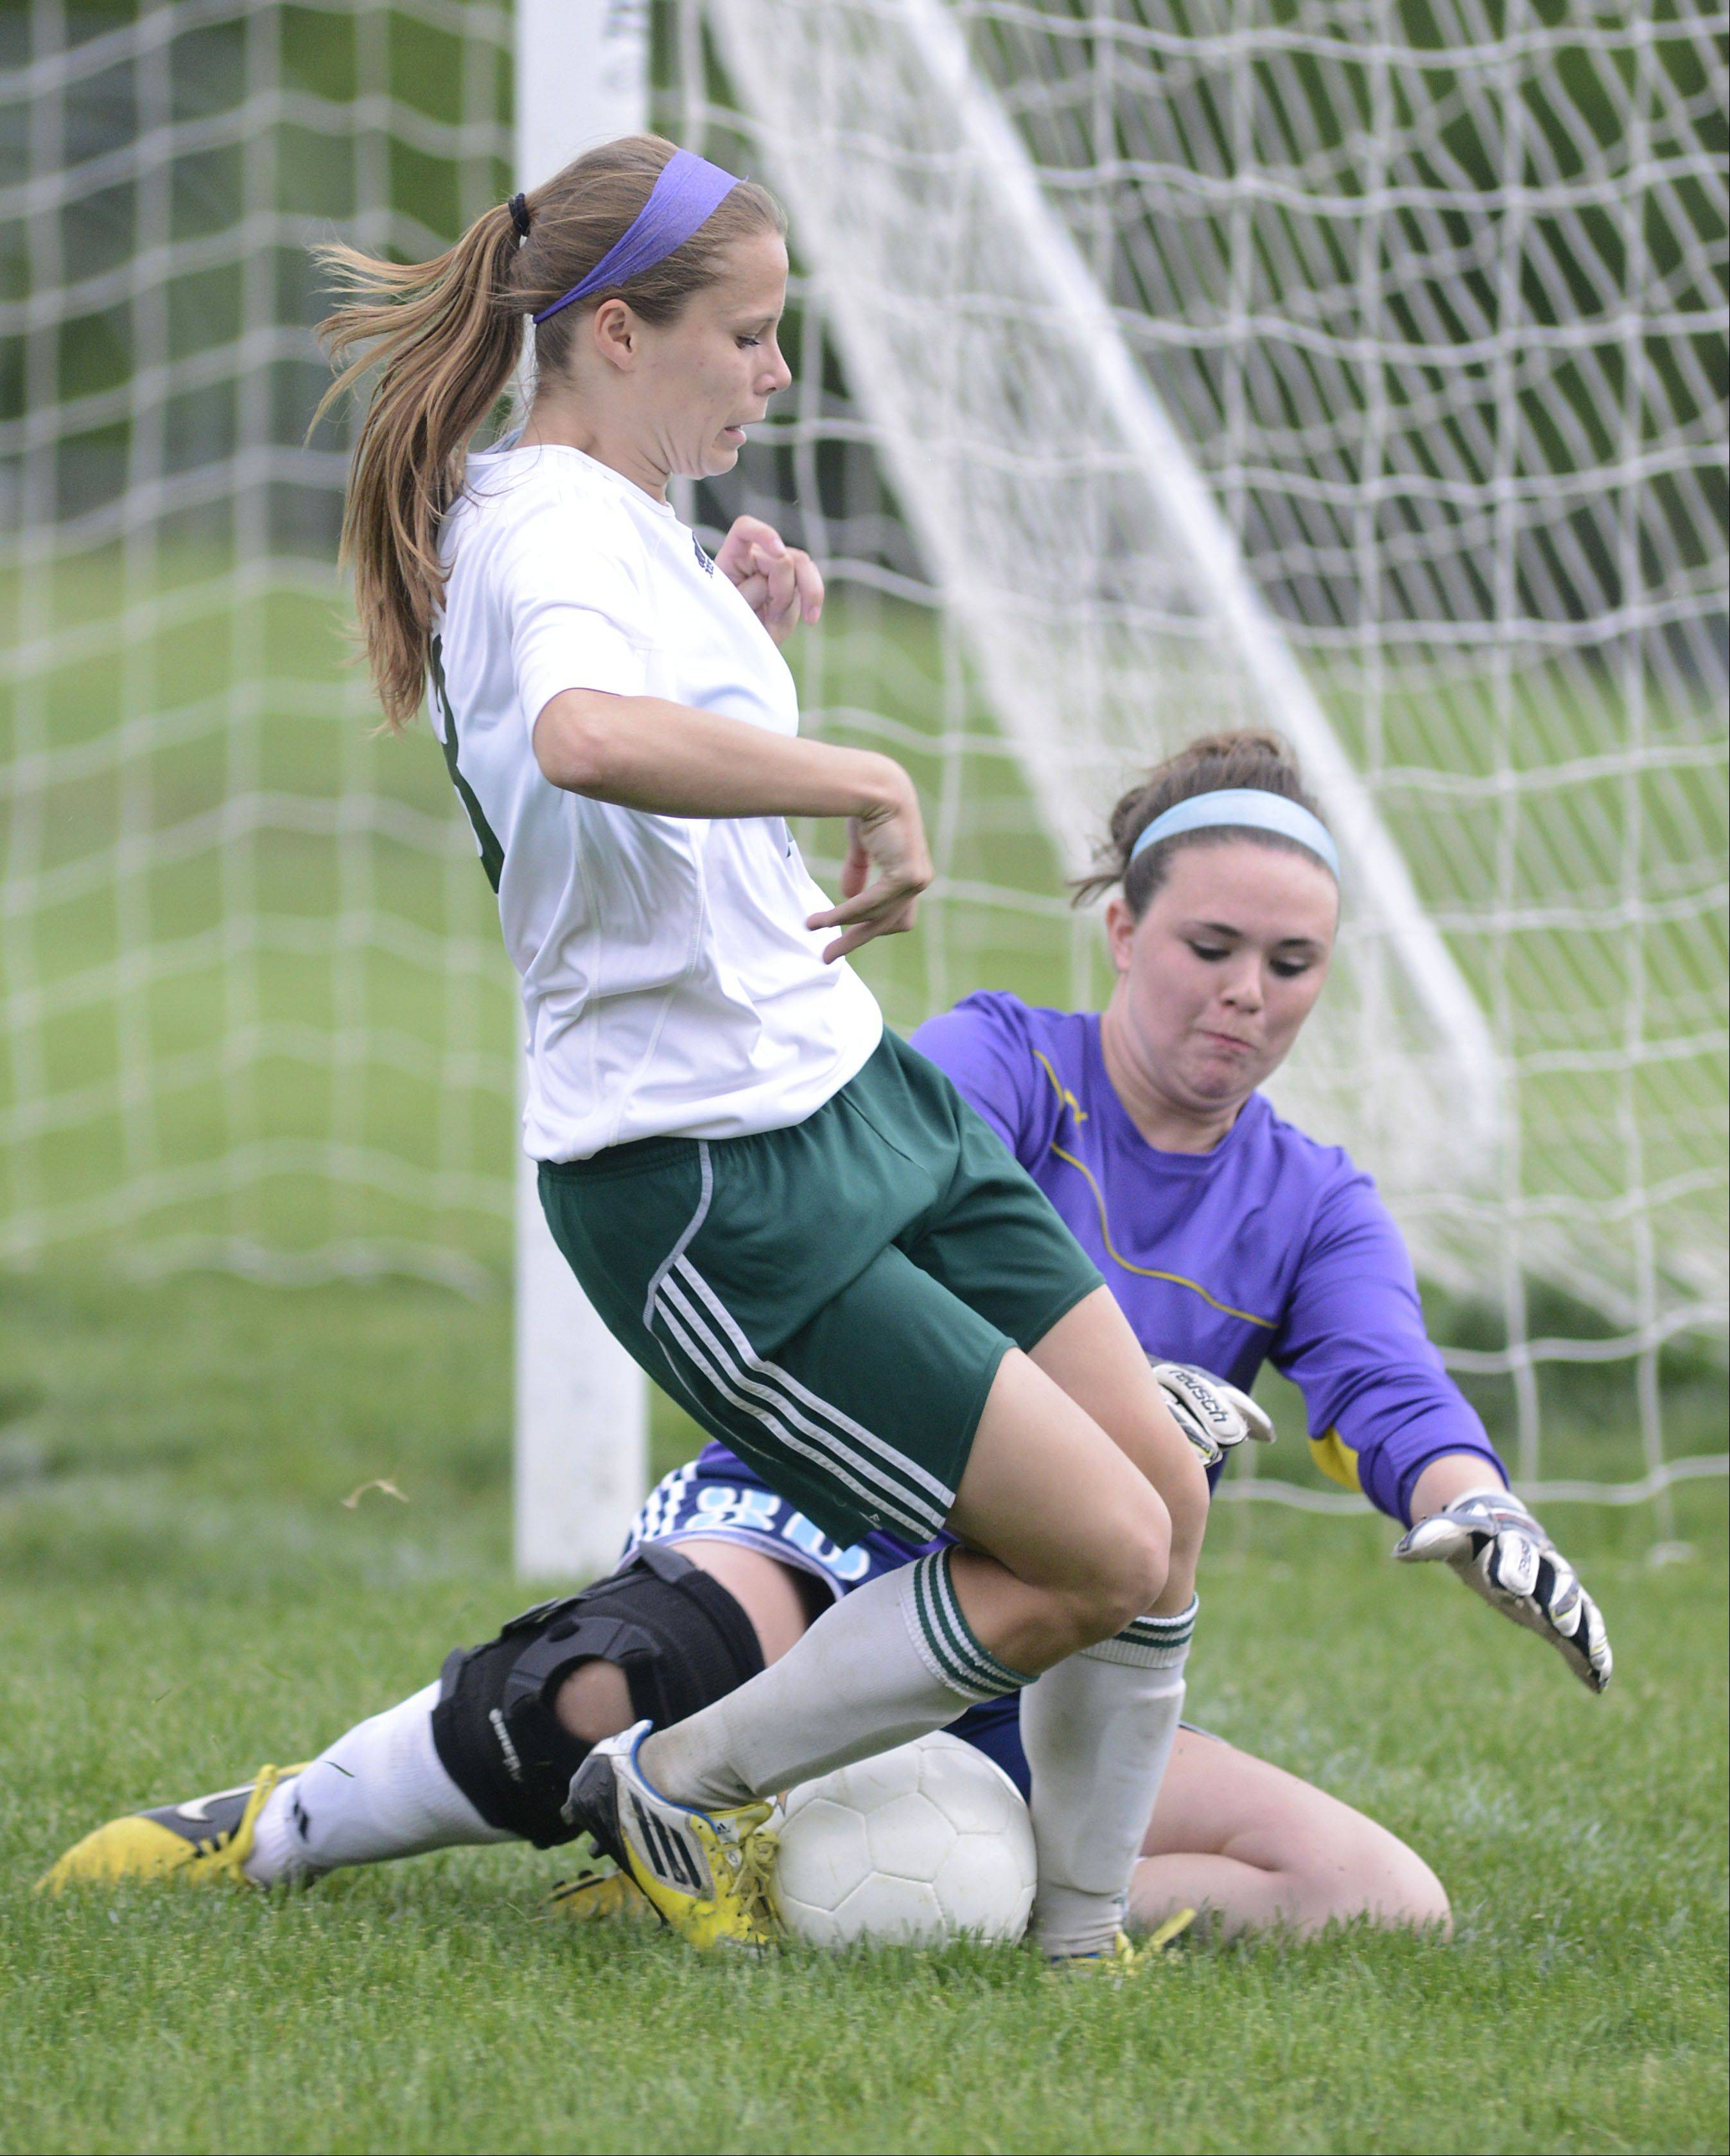 Willows Academy goalie Bethy Hunt attempts to capture the ball as St. Edward's Meagan Kearney drives to the net during Friday's Class 1A girls soccer sectional title game.